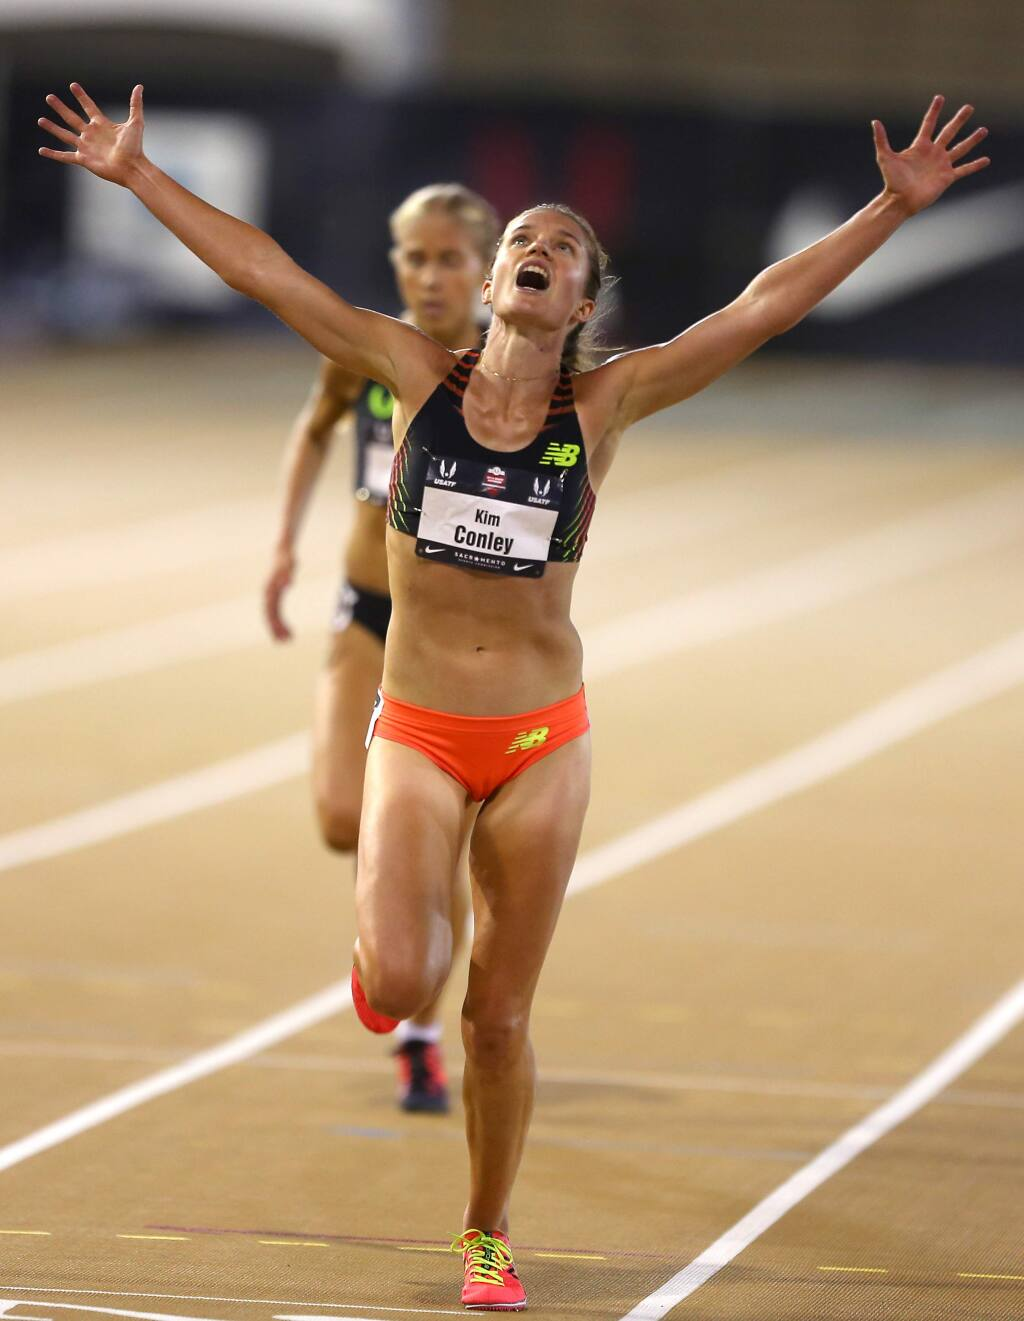 Kim Conley throws her arms up in celebration as she wins the 10,000-meter race at the USA Track and Field Outdoor Championships in Sacramento on Thursday, June 26, 2014. (Christopher Chung / The Press Democrat)